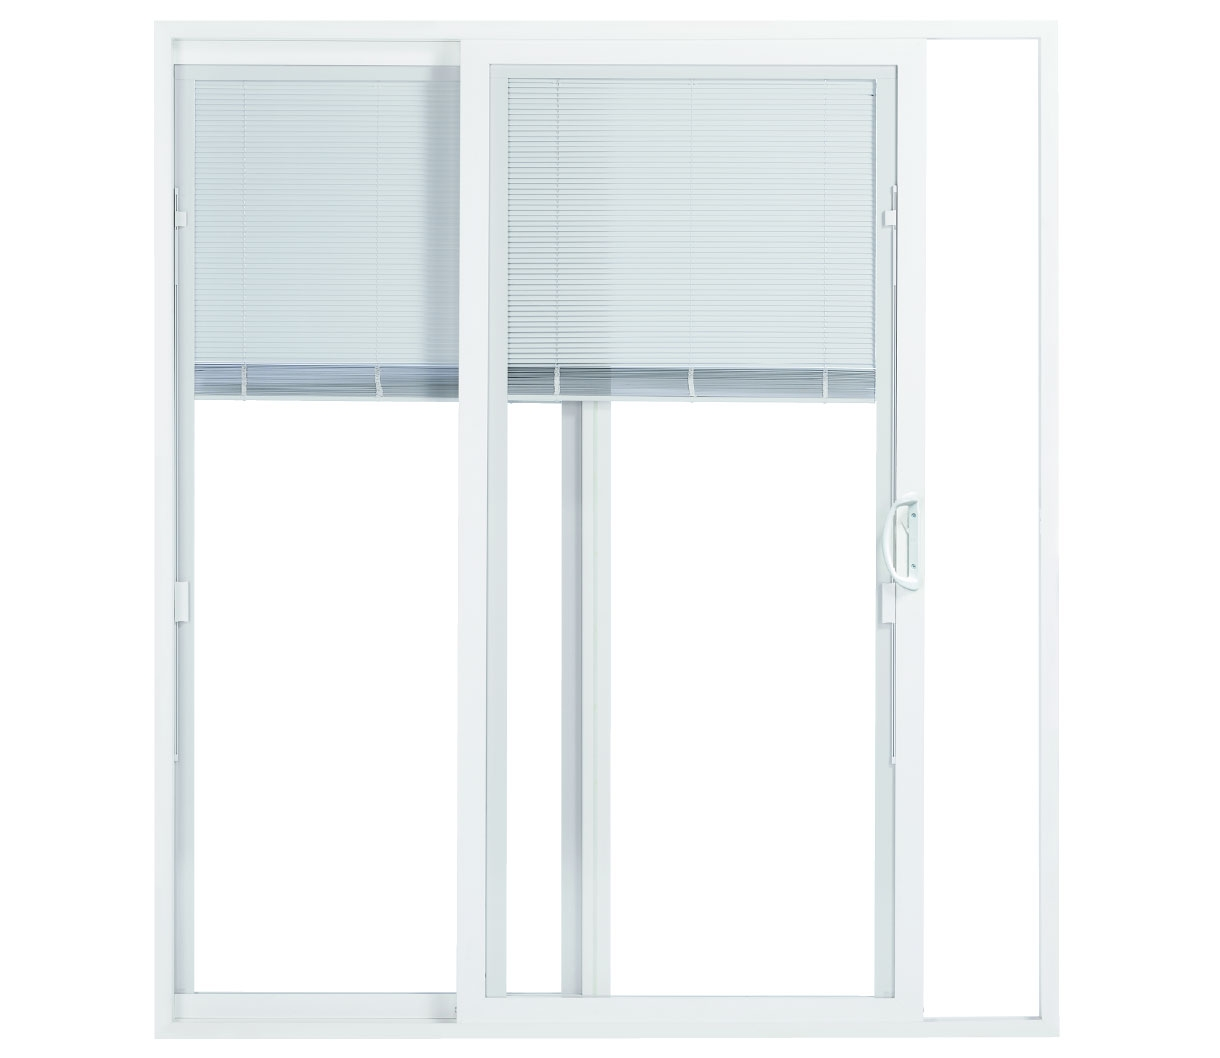 ENC-slidingdoor-blinds-cob